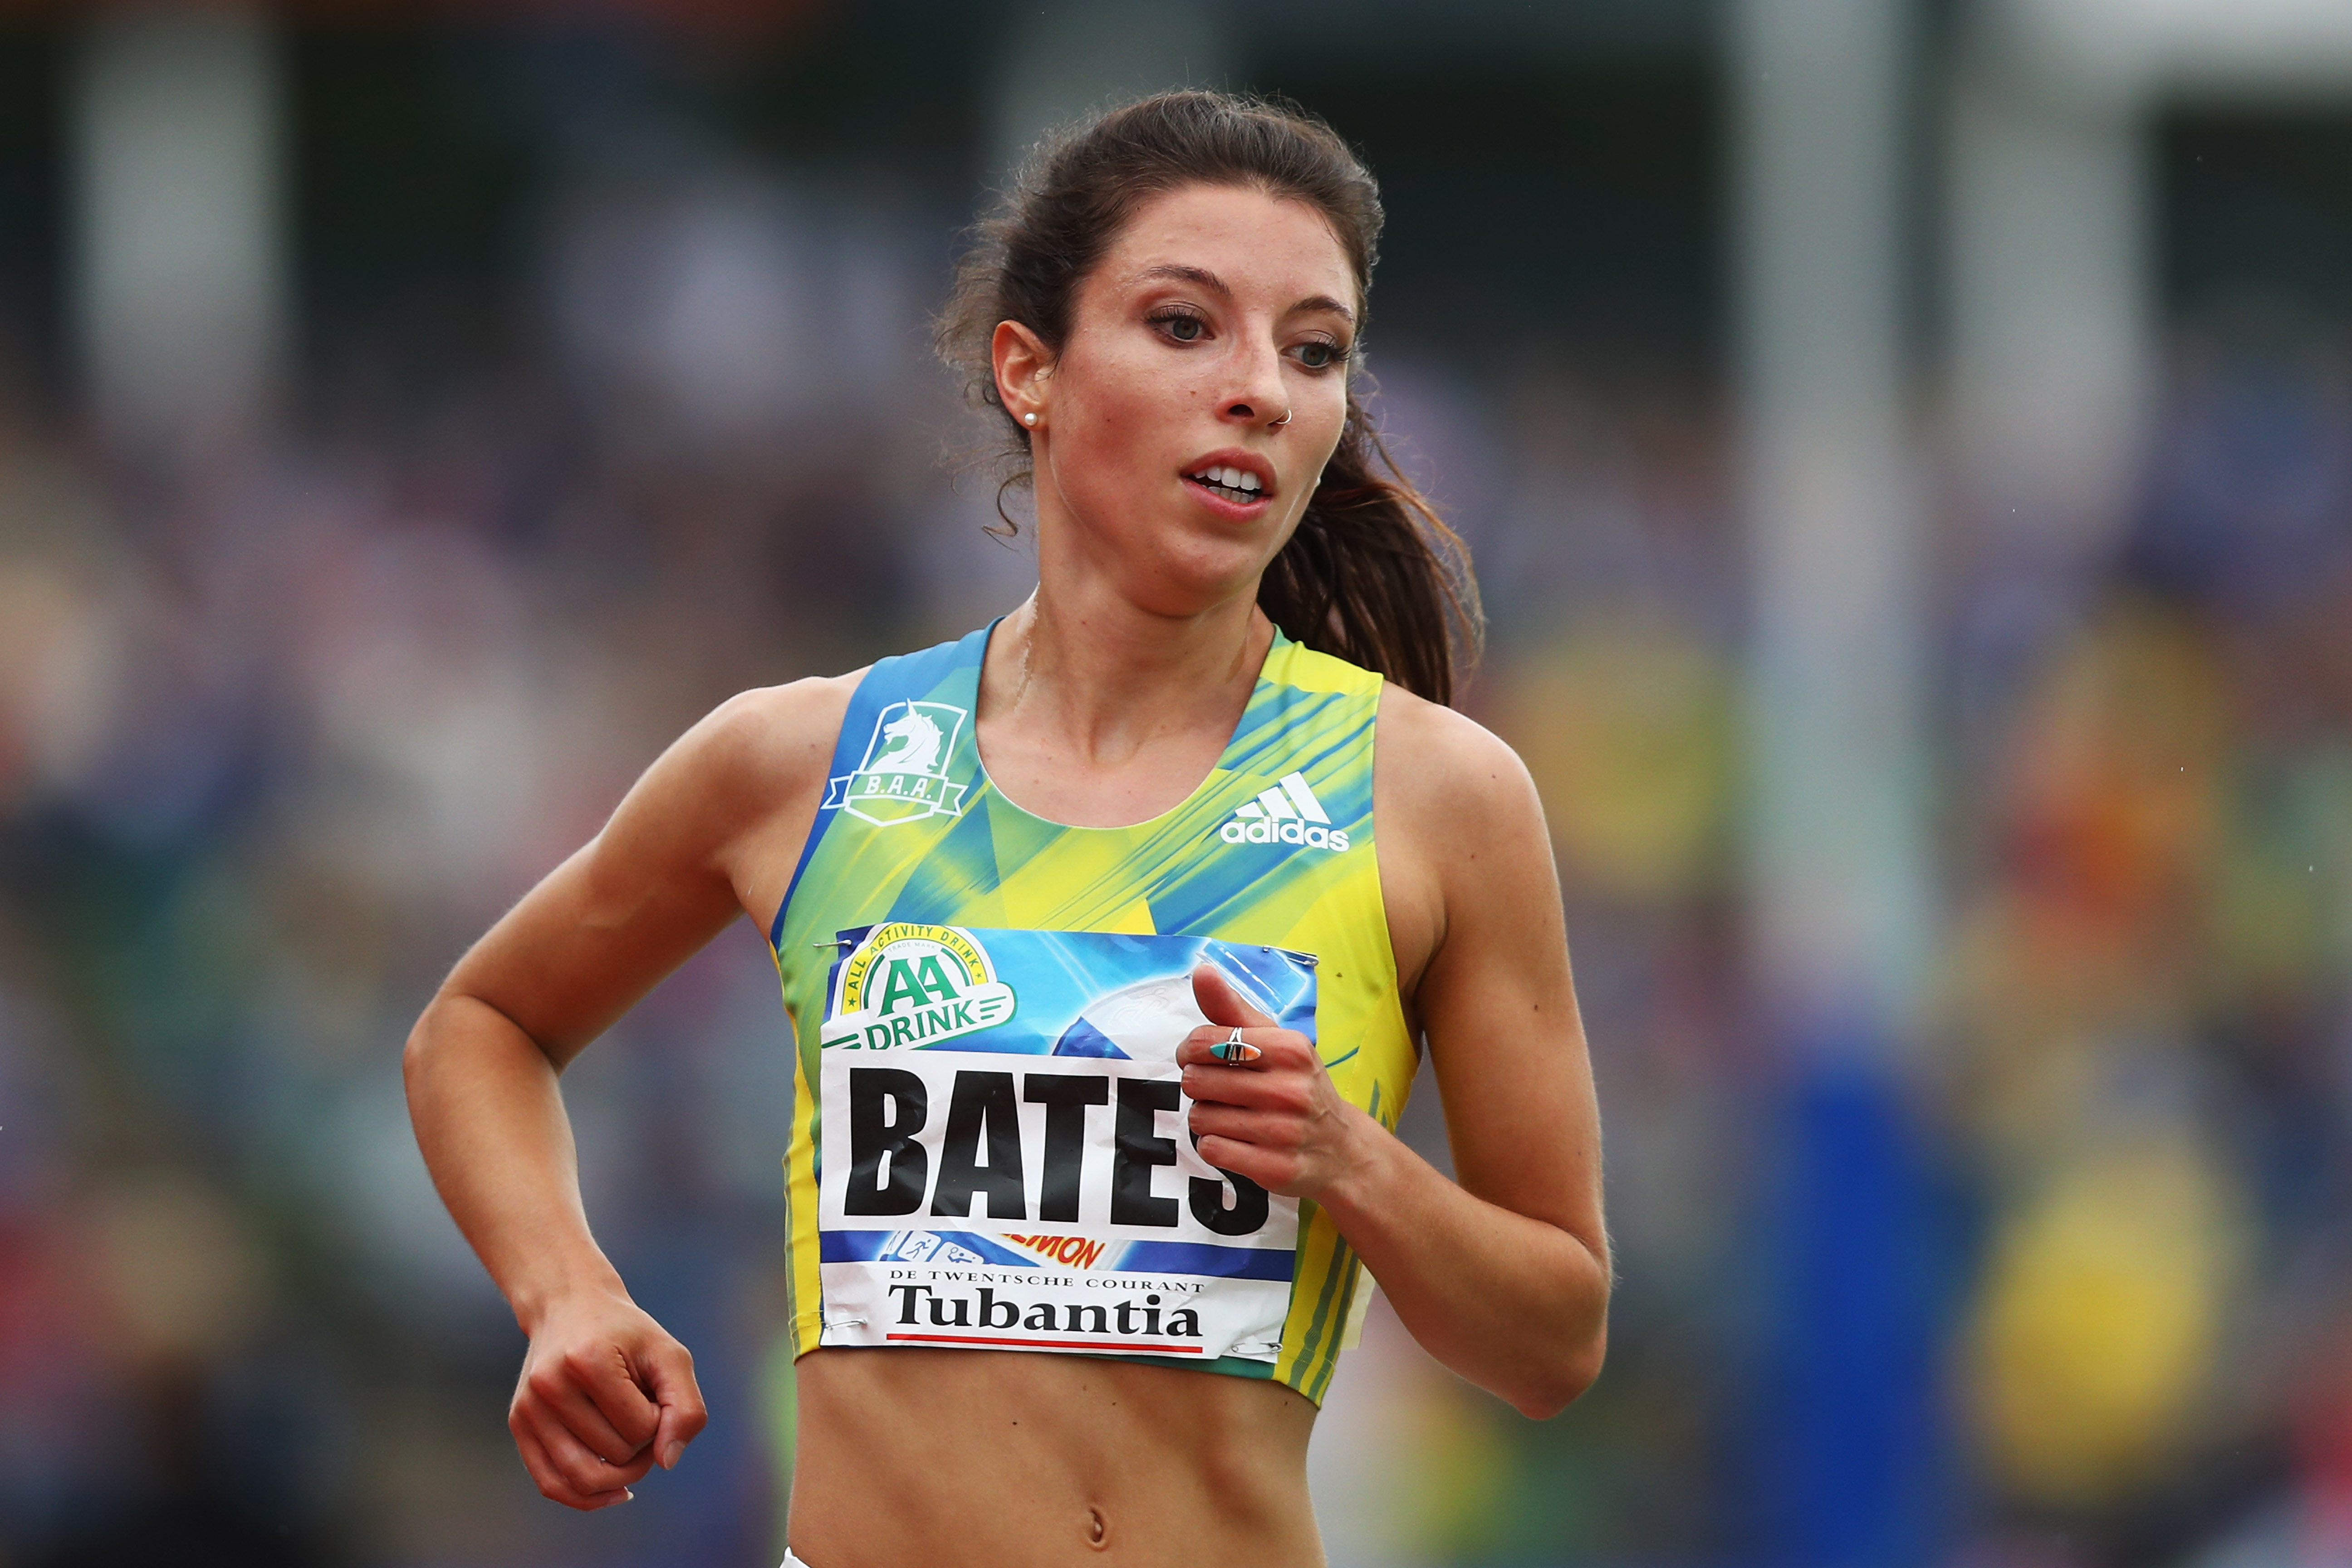 HENGELO, NETHERLANDS - MAY 22: Emma Bates of the USA competes in the Womens 5000m during the AA Drink FBK Games held at the FBK Stadium on May 22, 2016 in Hengelo, Netherlands. (Photo by Dean Mouhtaropoulos/Getty Images)